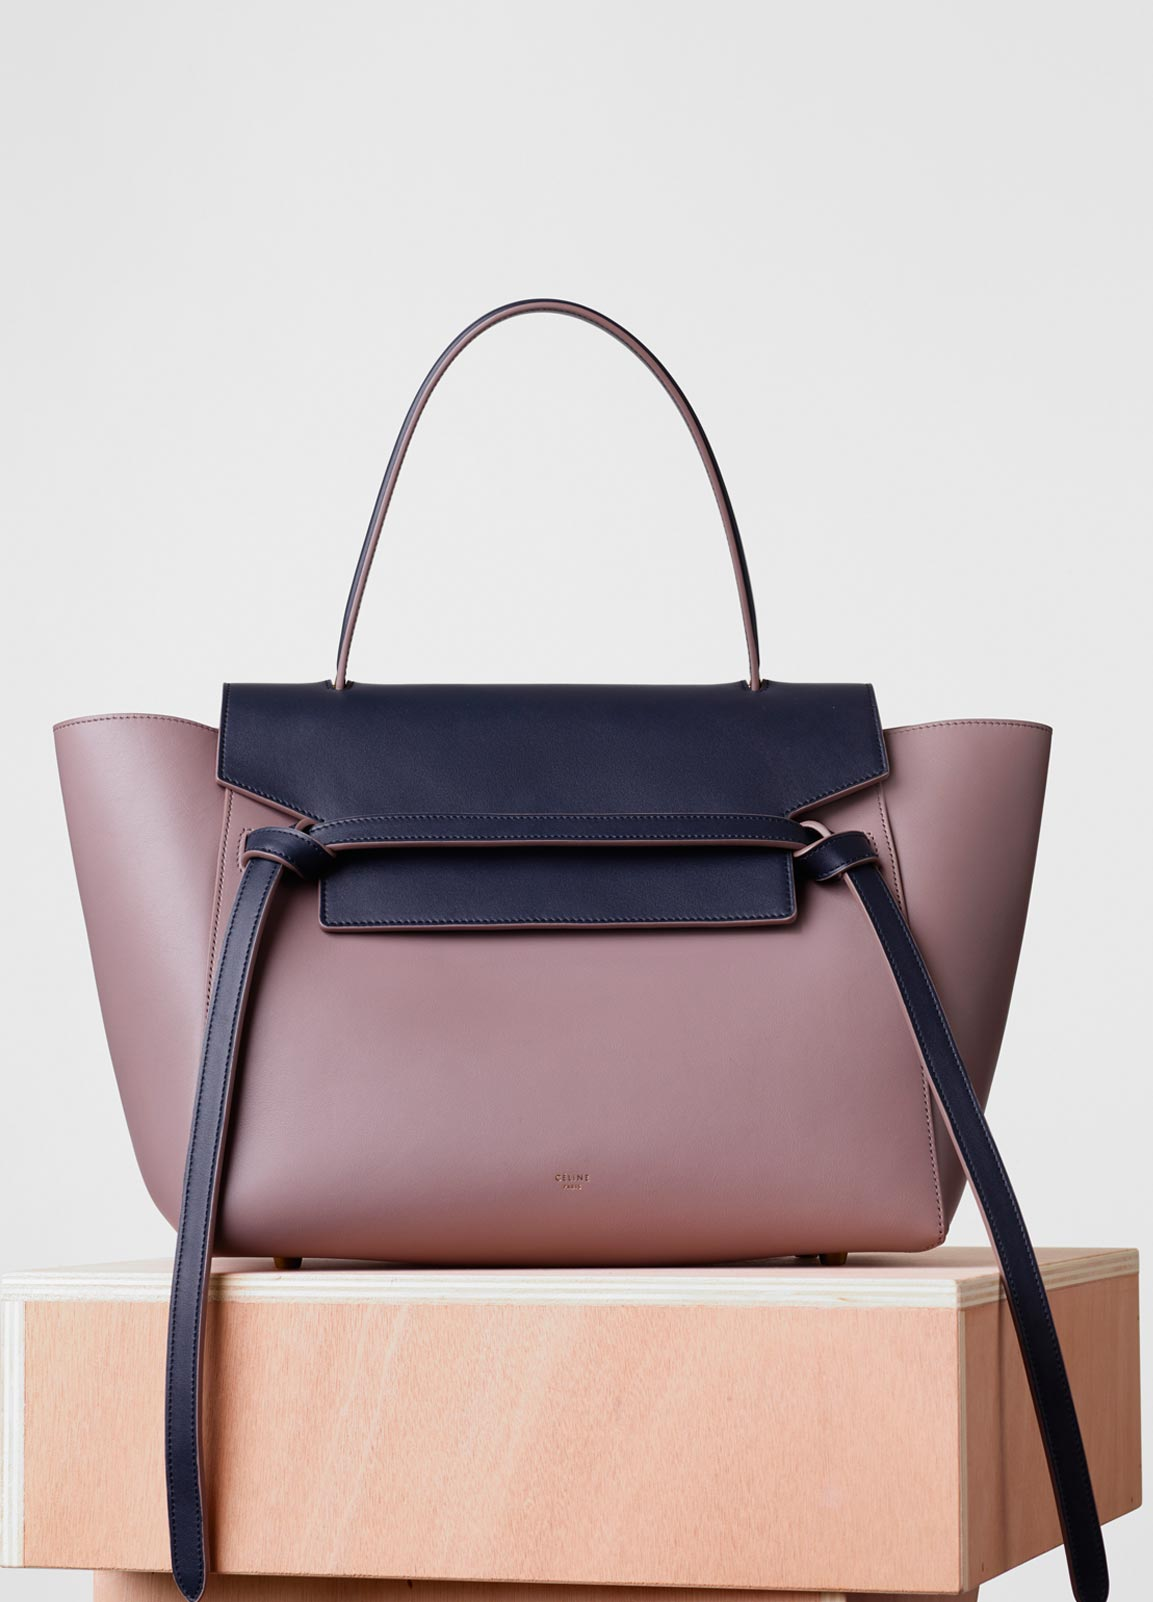 Celine Winter 2015 Bag Collection Featuring Subtropical Shades and ...